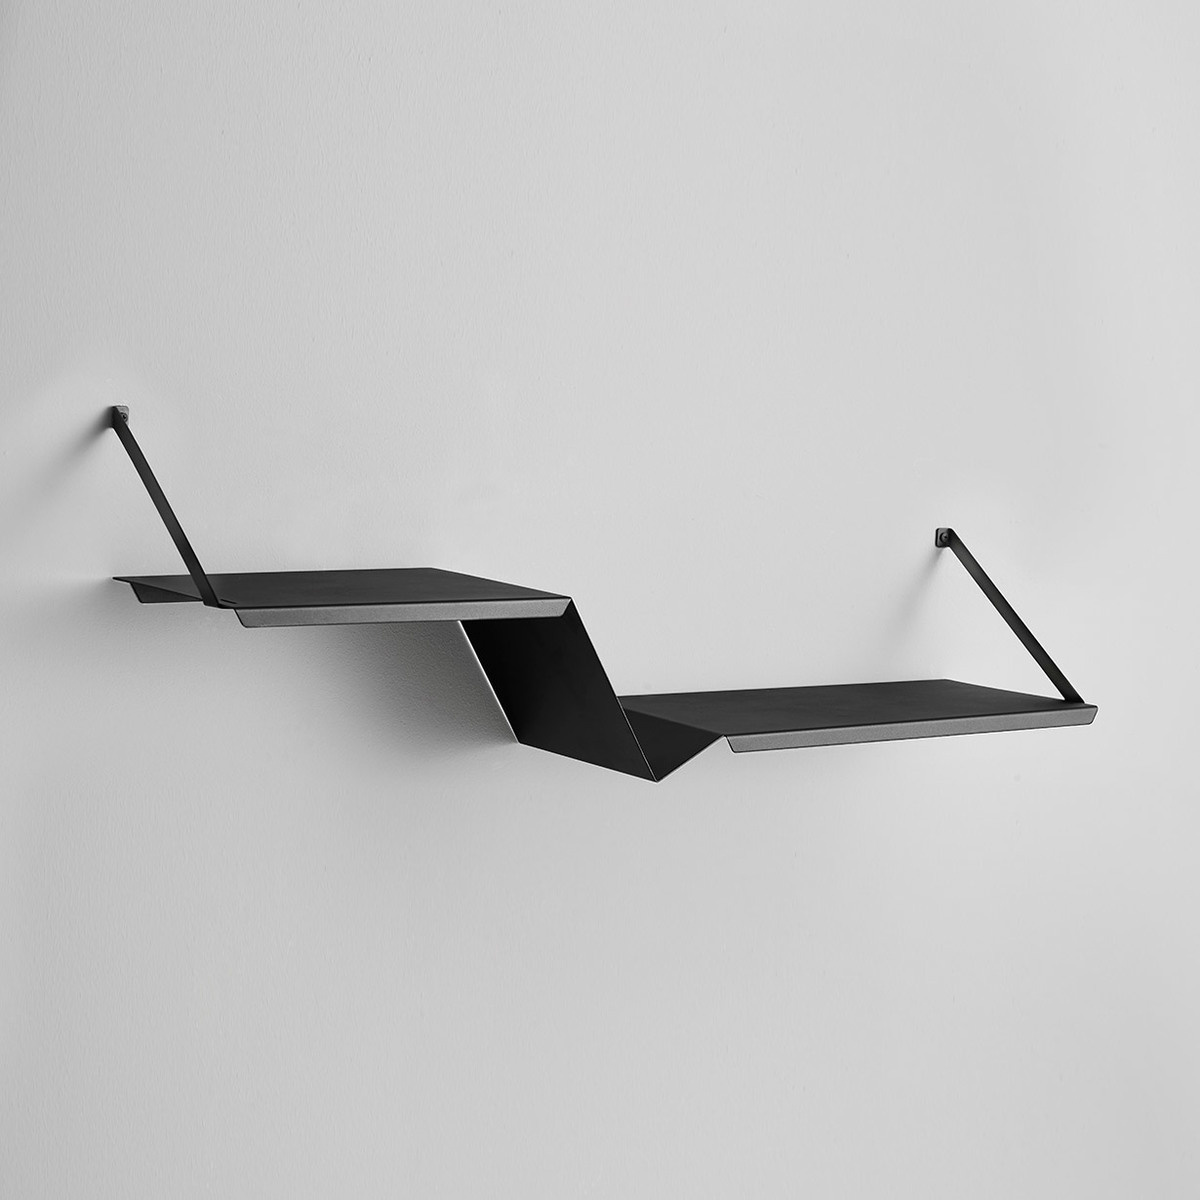 Fold shelf by Woud | LOVEThESIGN - photo#28